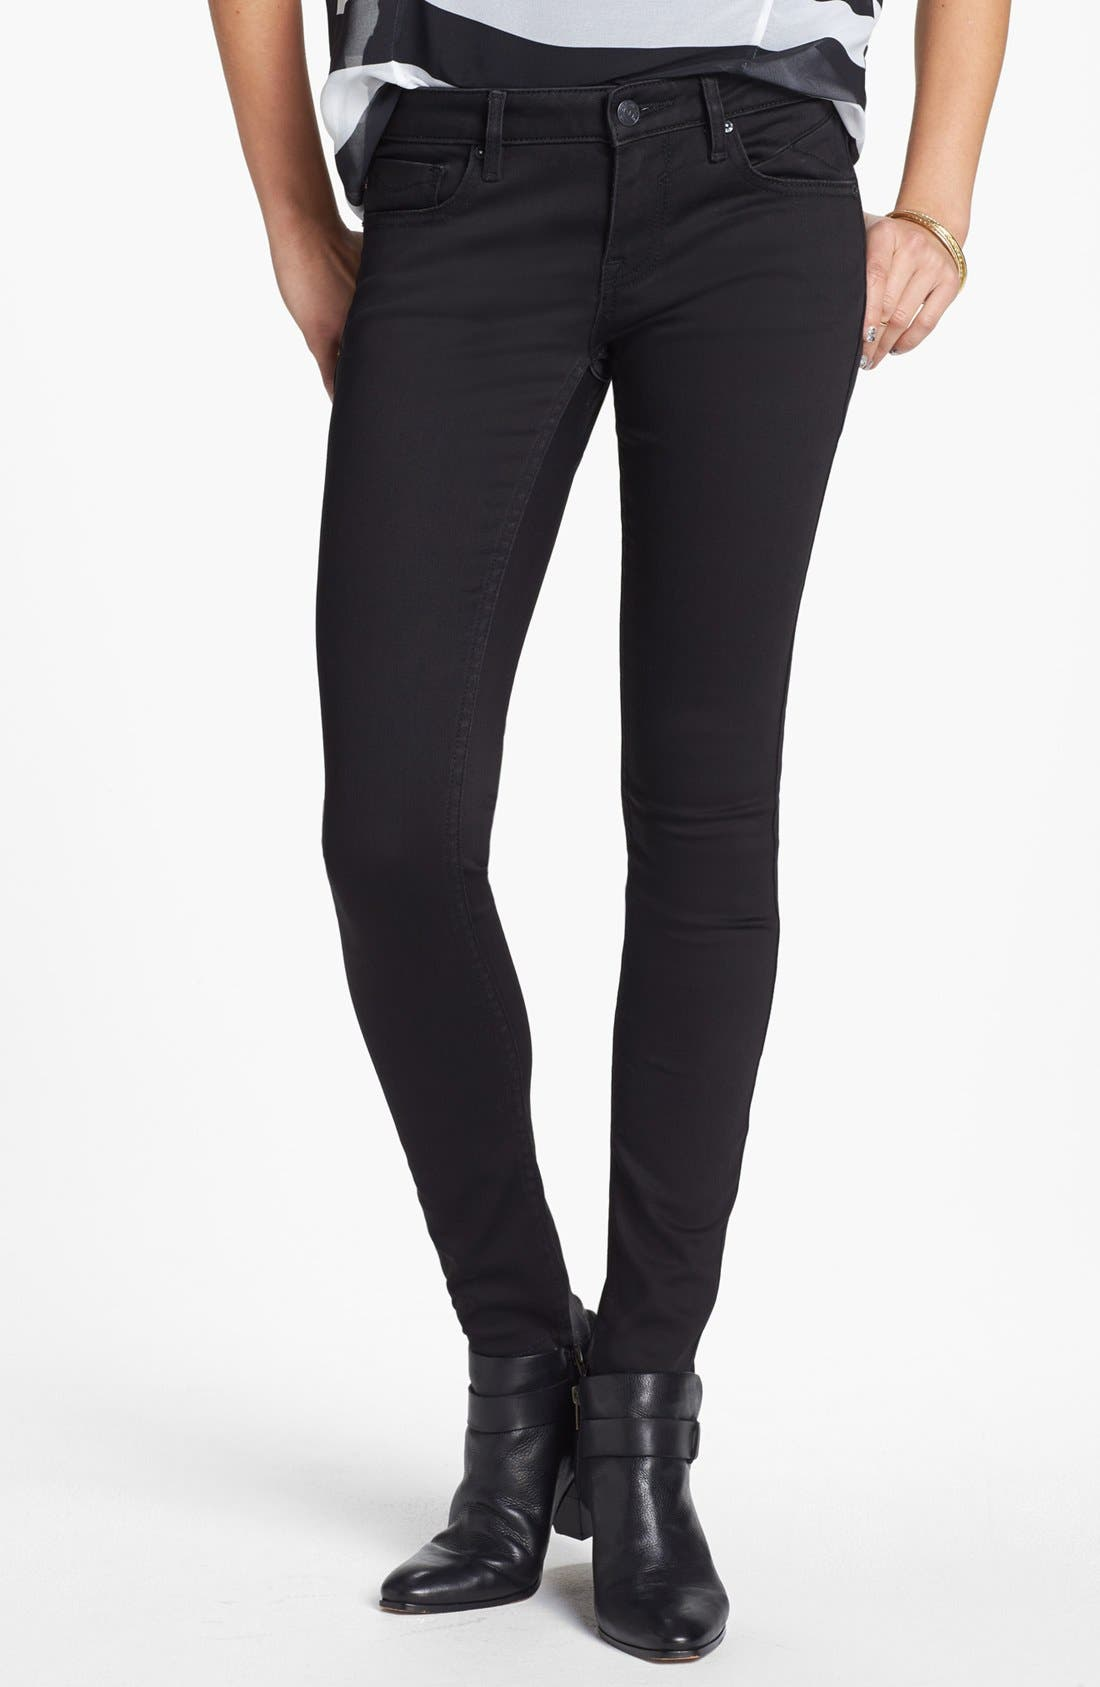 Main Image - Vigoss 'Chelsea' Super Stretchy Skinny Jeans (Juniors) (Online Only)